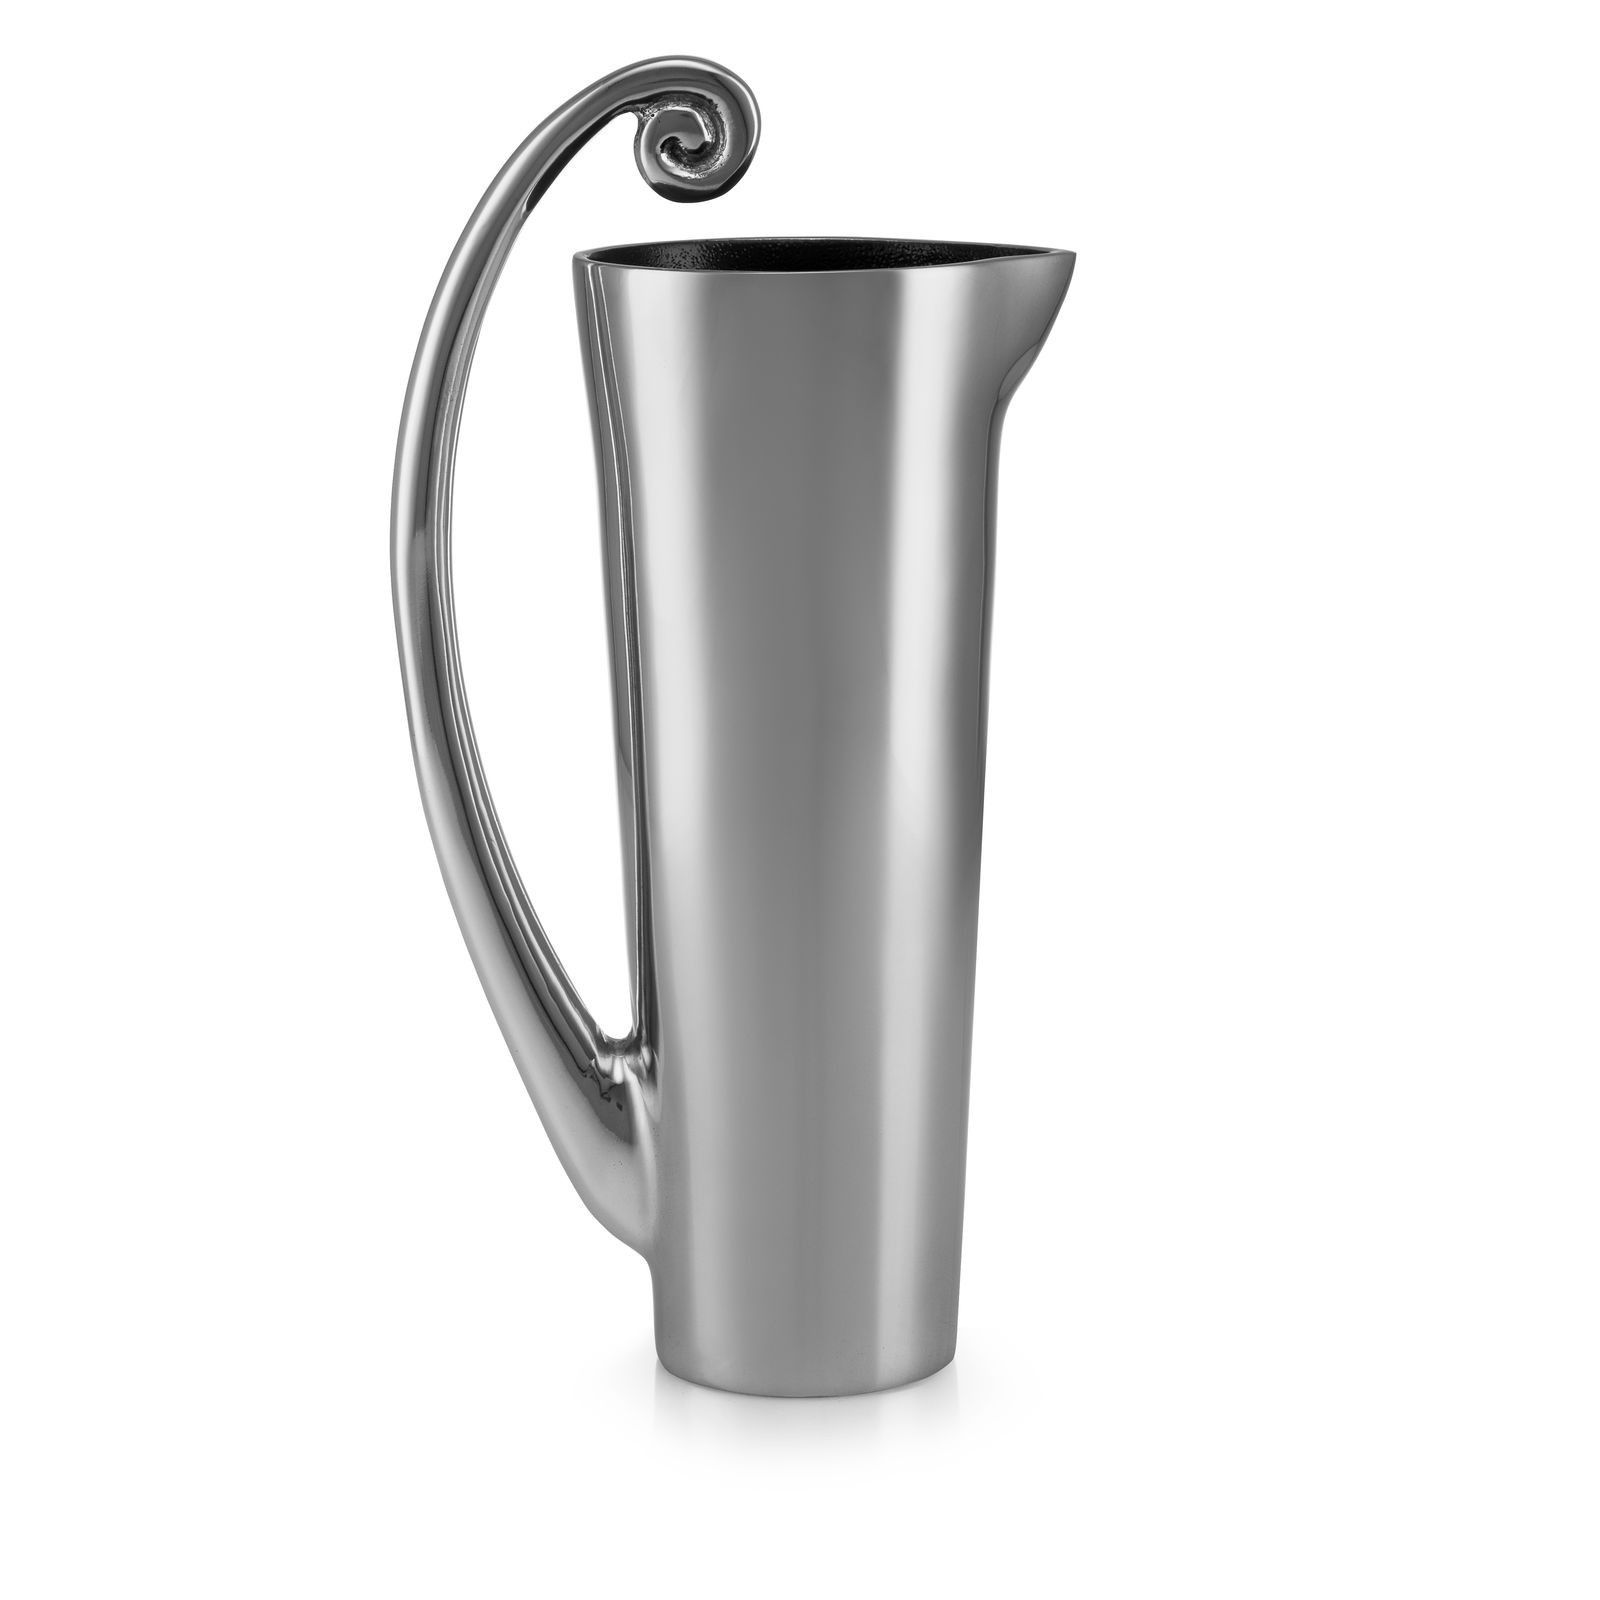 Carrol Boyes Water Pitcher Water pitchers, Pitcher